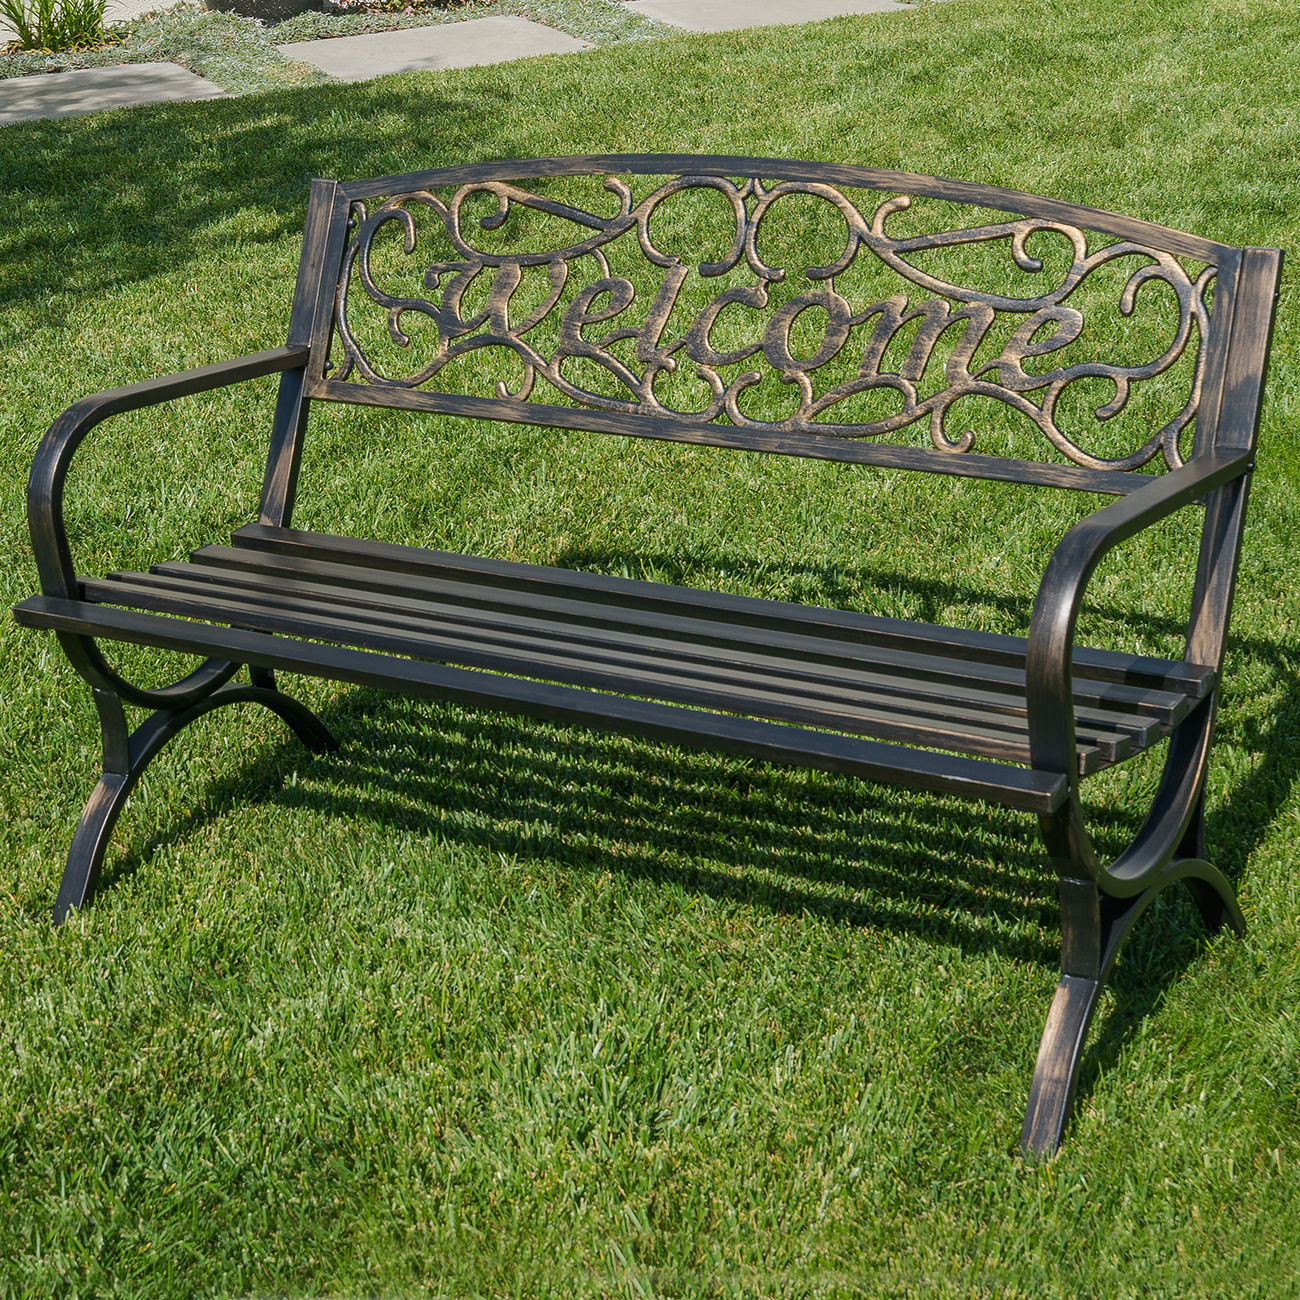 Pleasant Details About 50 Welcome Decorative Patio Garden Outdoor Park Bench Seat Backyard Bronze Bralicious Painted Fabric Chair Ideas Braliciousco